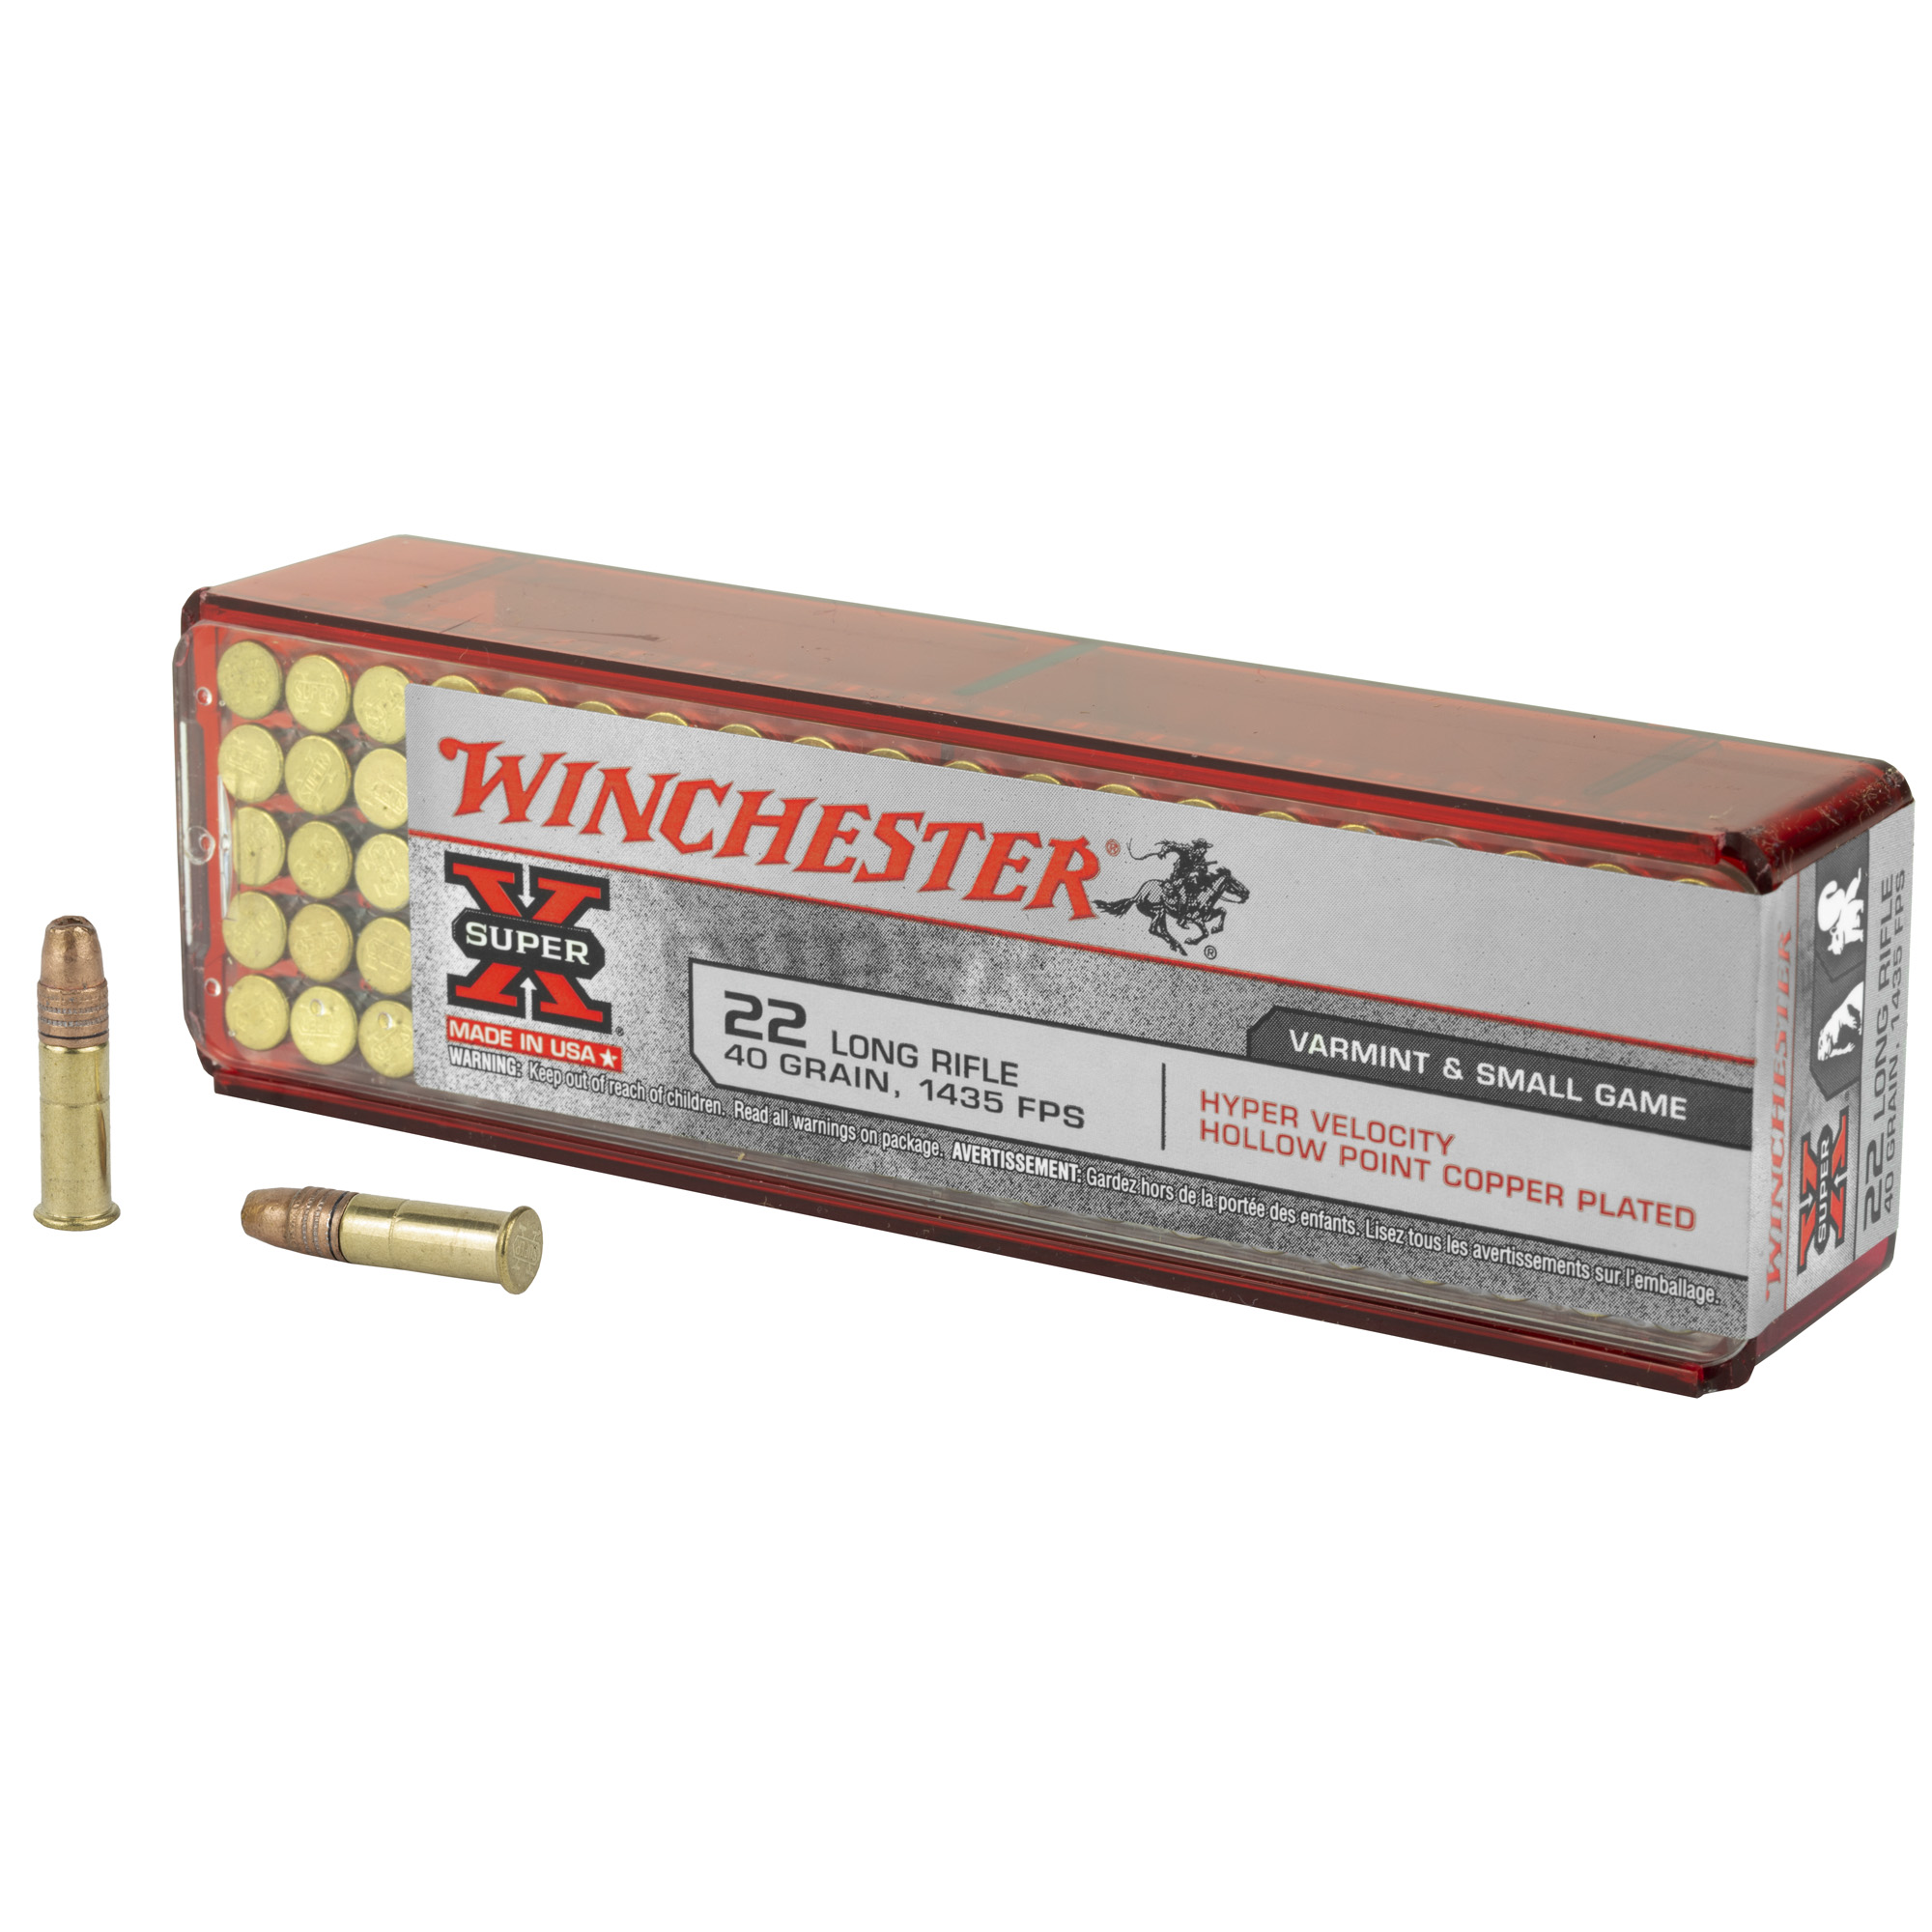 Winchester Ammo XHV22LR Super-X 22 LR 40 gr Hyper Velocity Hollow Point Copper Plated 100RD